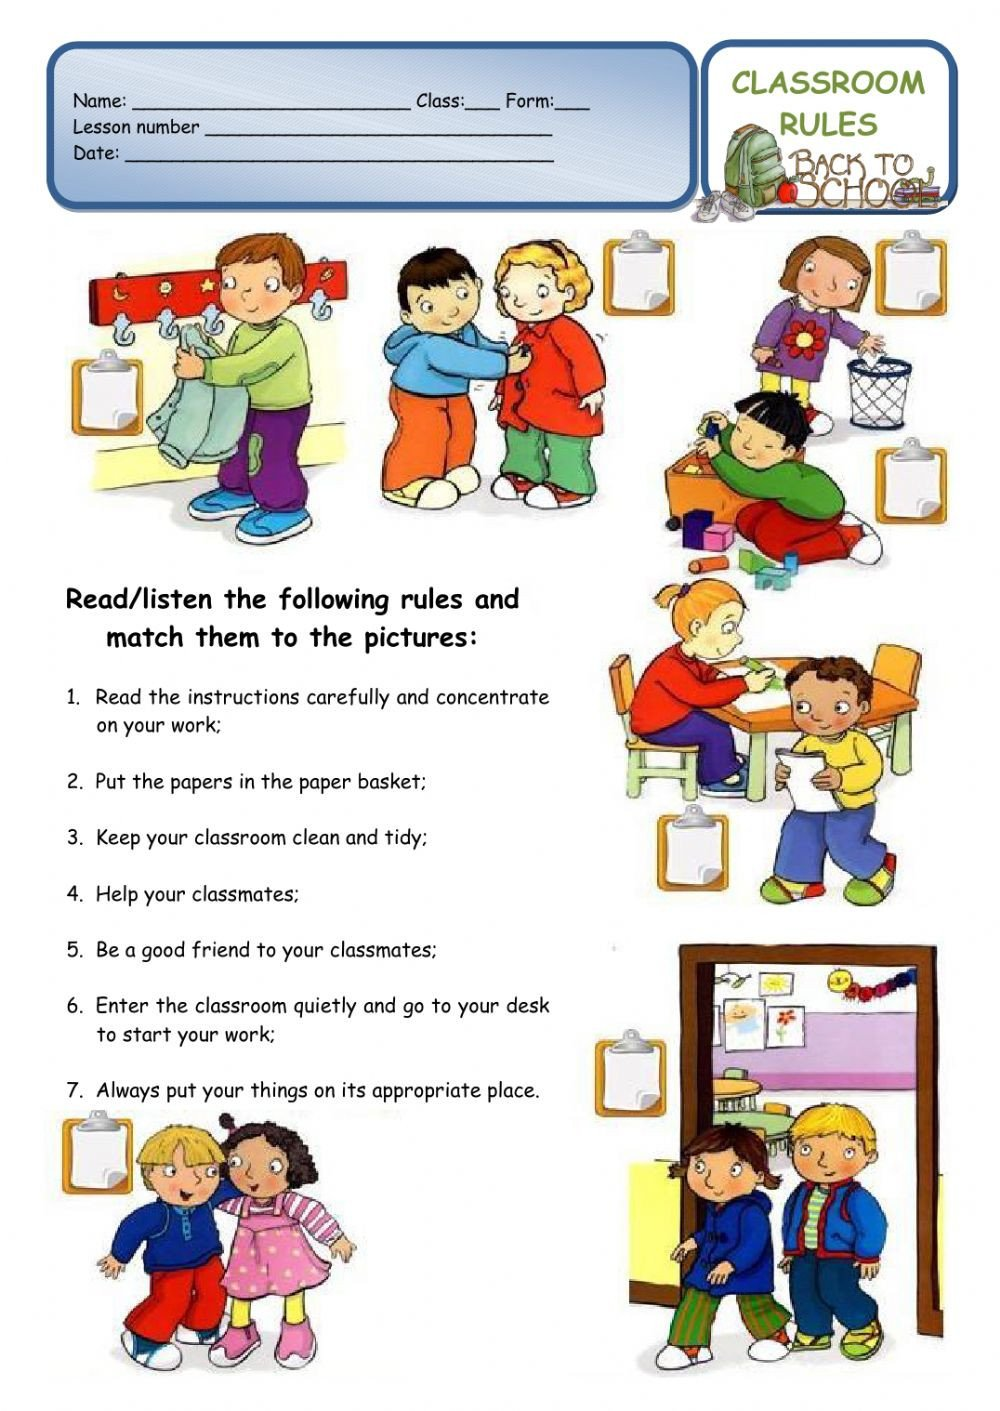 Classroom Rules Worksheet Classroom Rules A Back to School Worksheet Interactive